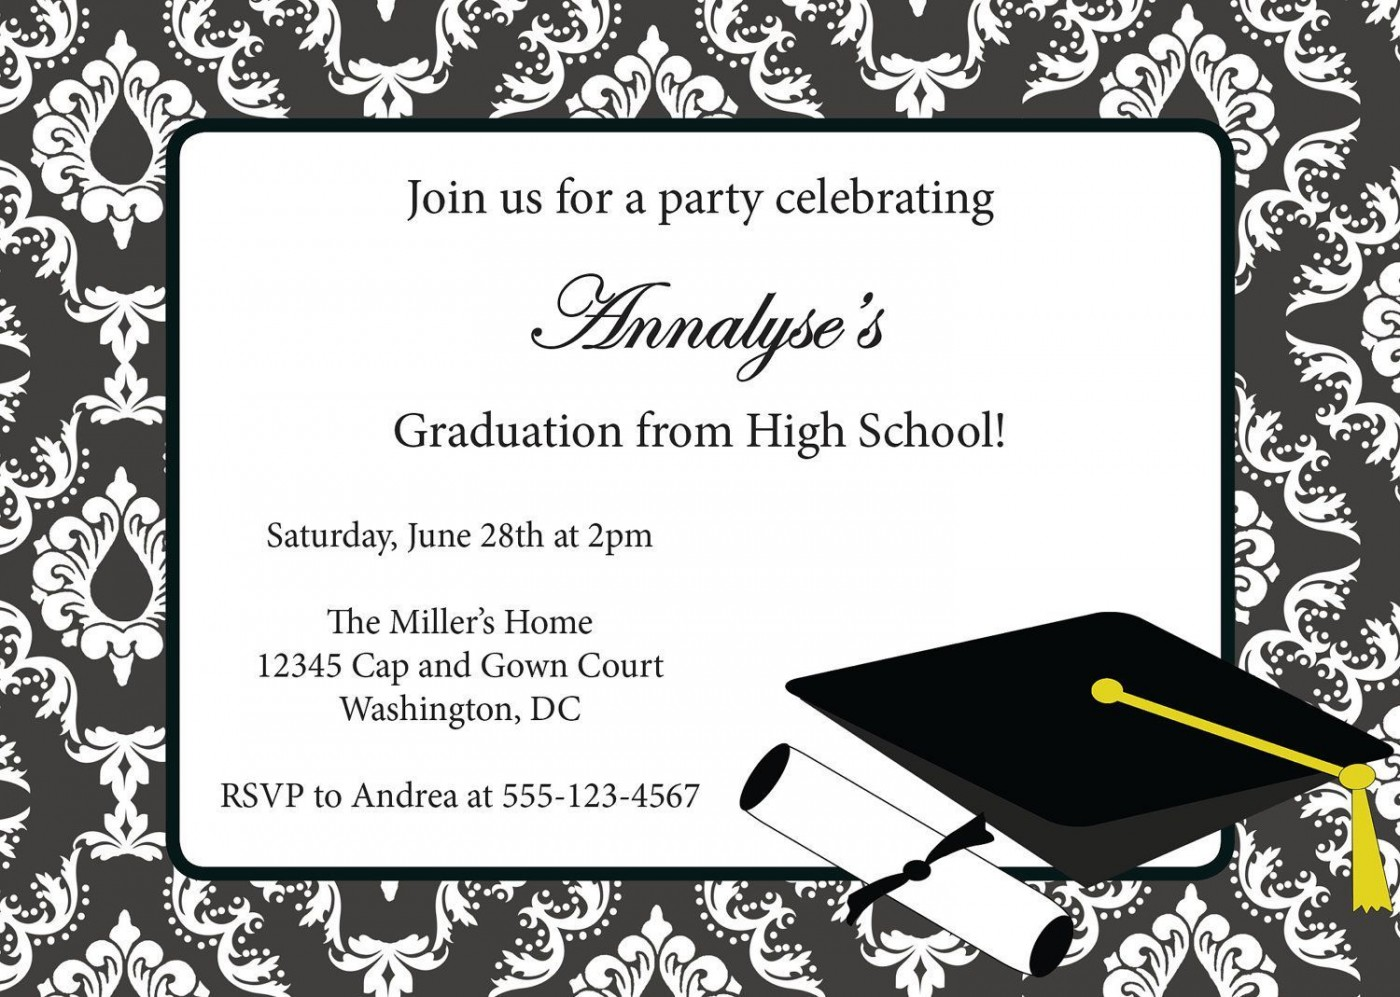 002 Amazing College Graduation Invitation Template Sample  Free For Word Party1400